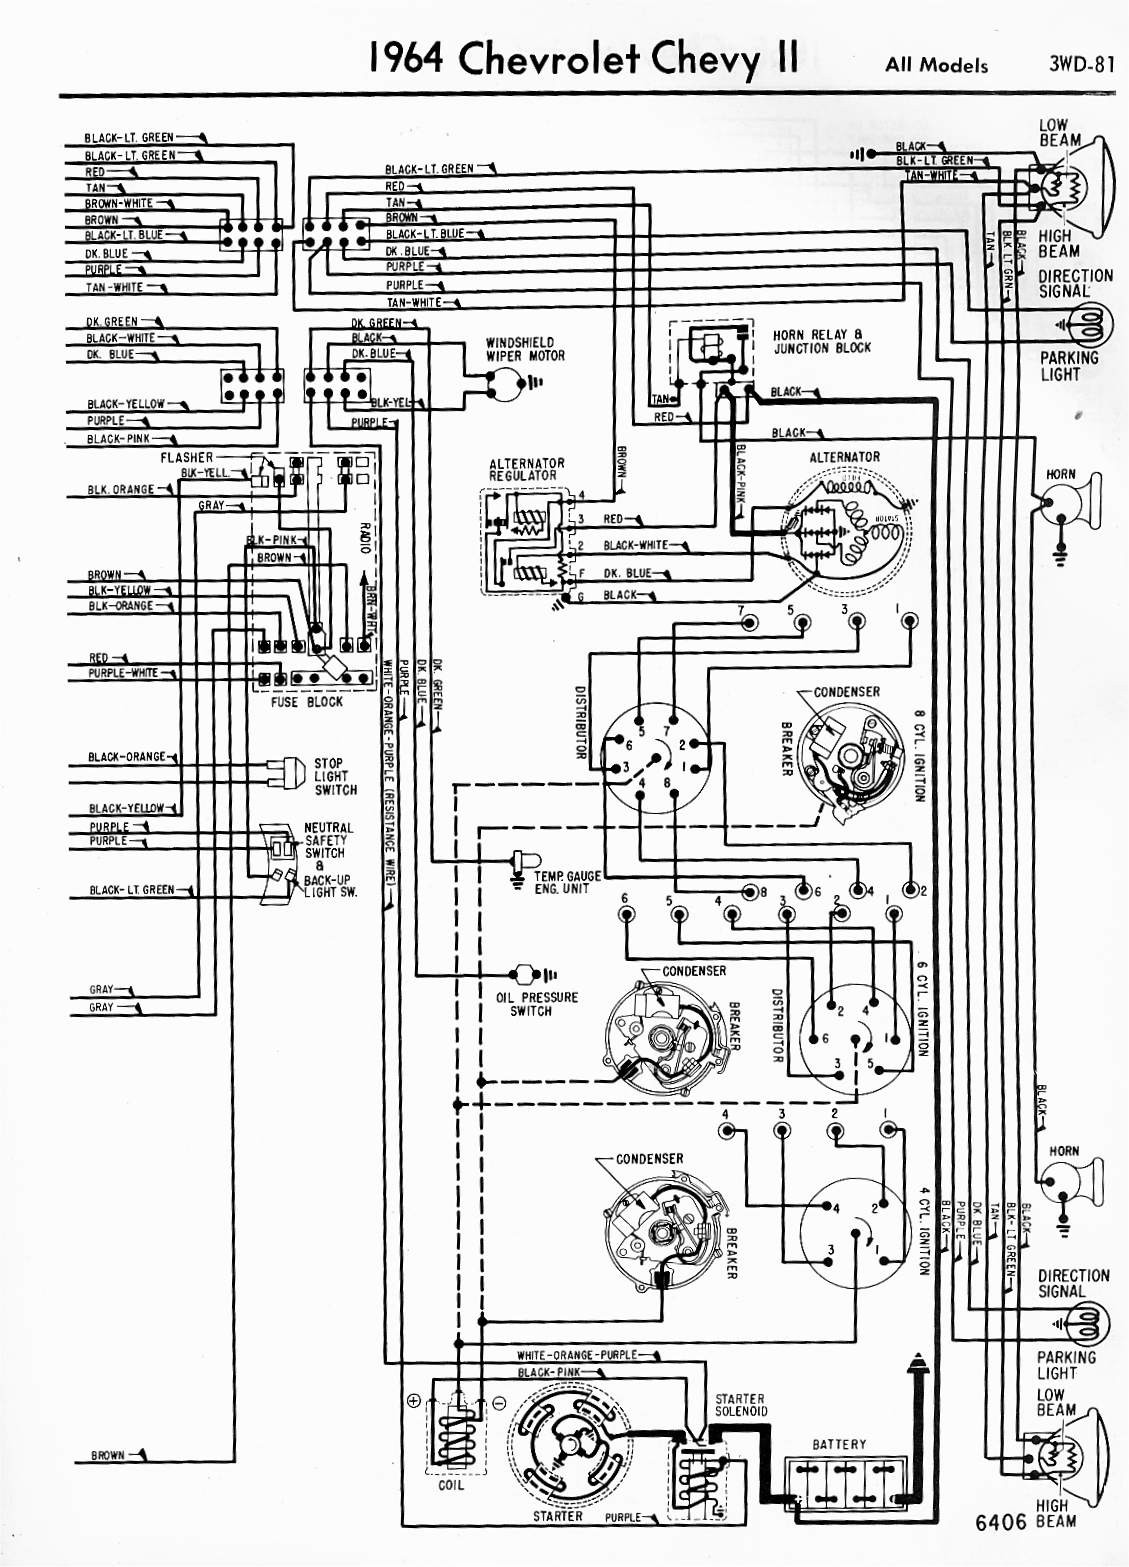 1964 Chevy Truck Turn Signal Wiring Diagram - House Wiring Diagram ...